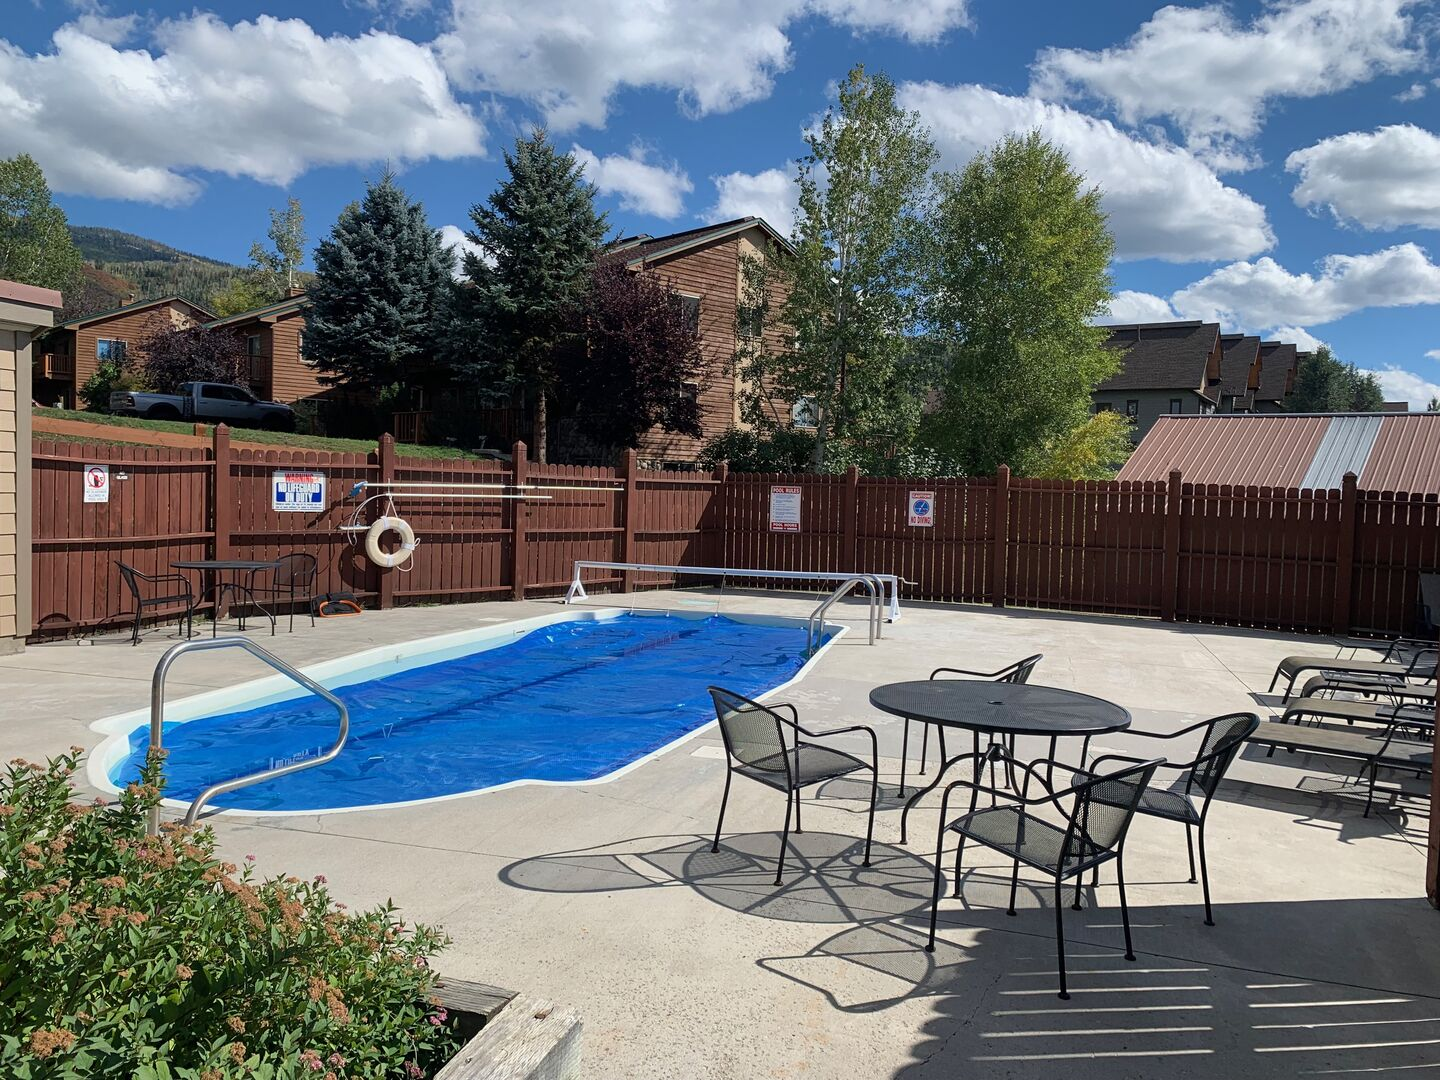 Pool - open in the summer!